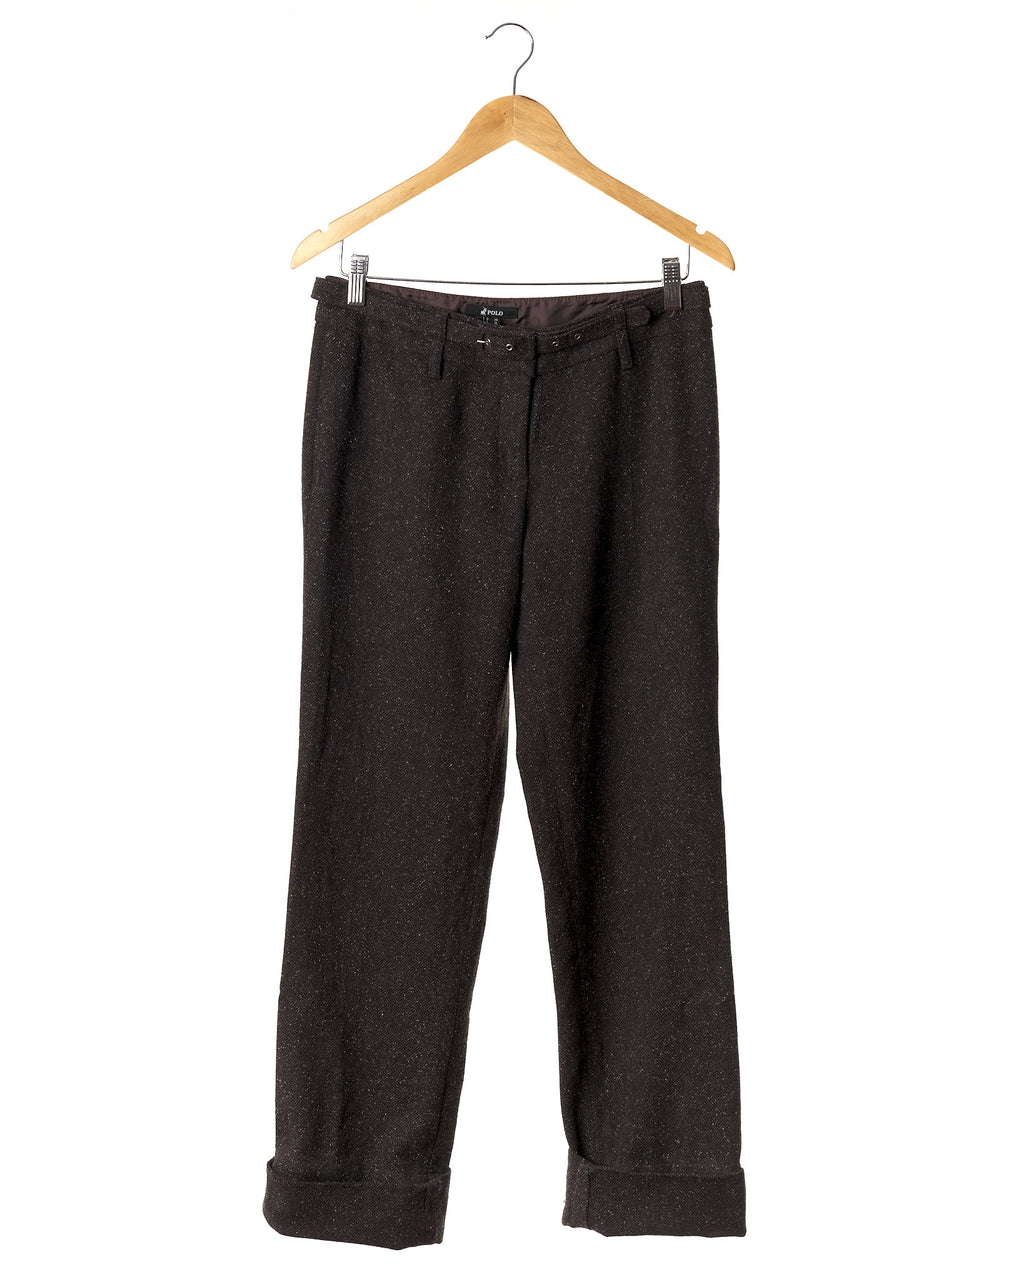 Cocoa Wool Herringbone Cuffed Trousers